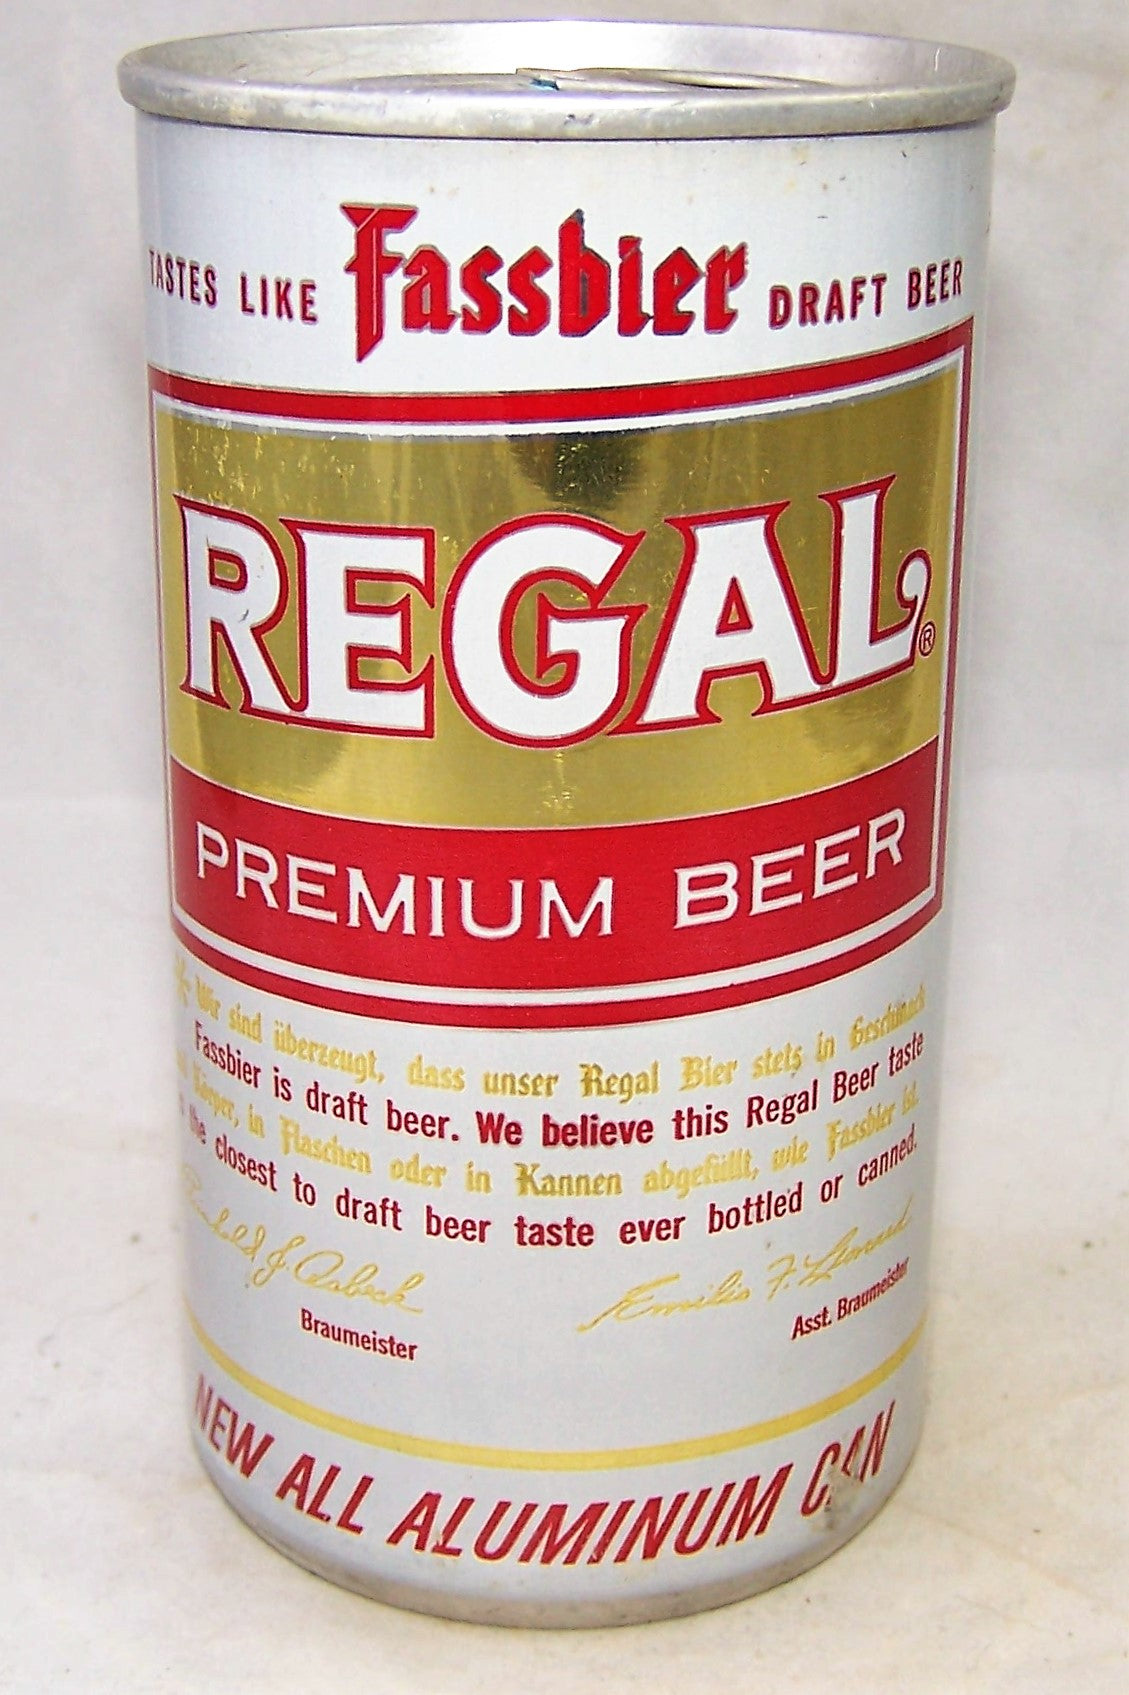 Regal Premium Beer, Straight Aluminum, USBC II 113-21, Grade 1/1+